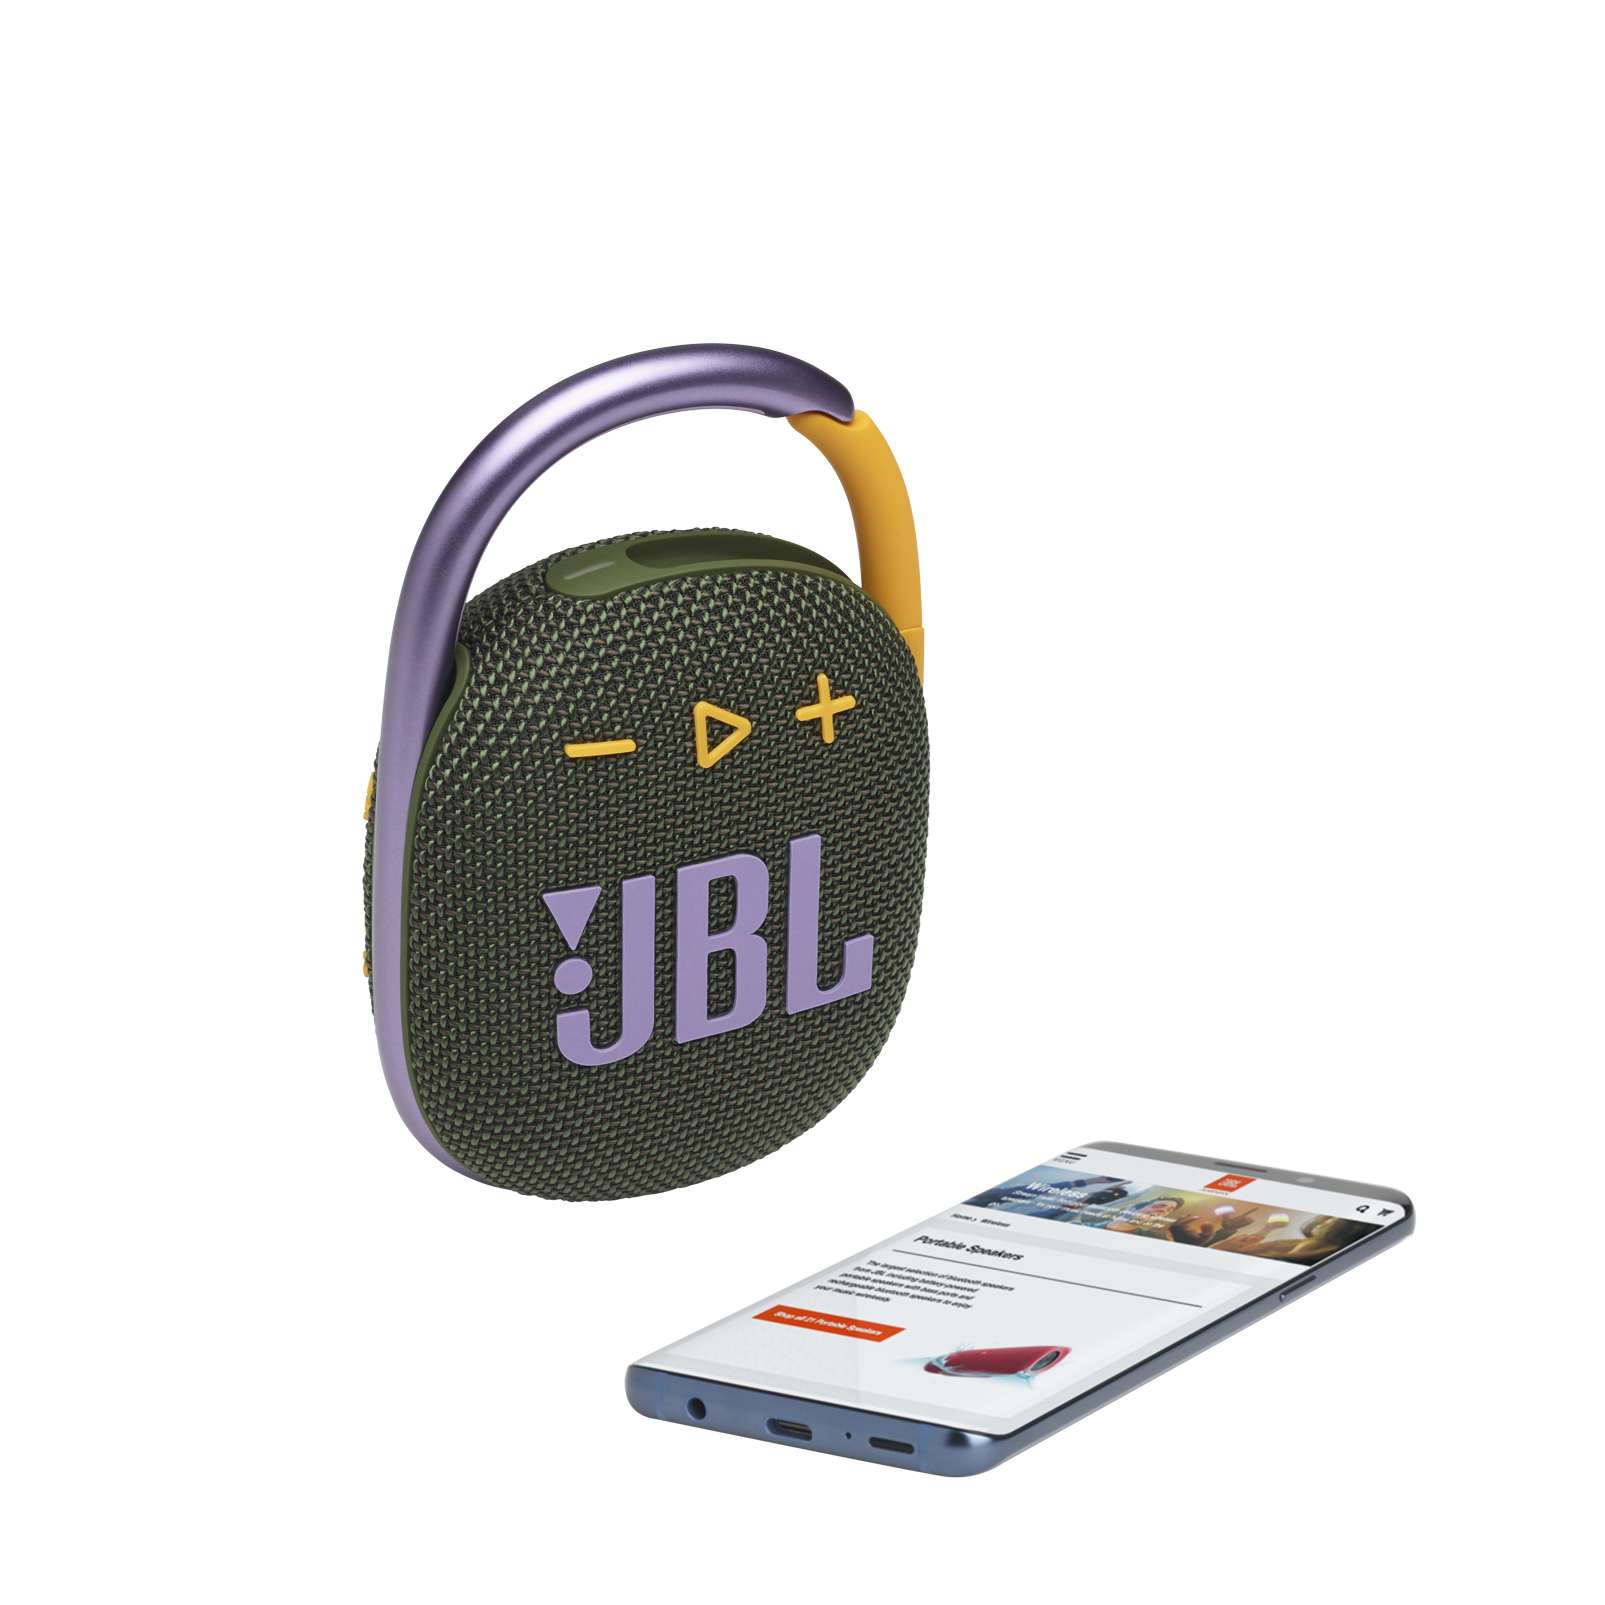 JBL CLIP 4 - Green - Ultra-portable Waterproof Speaker - Detailshot 1